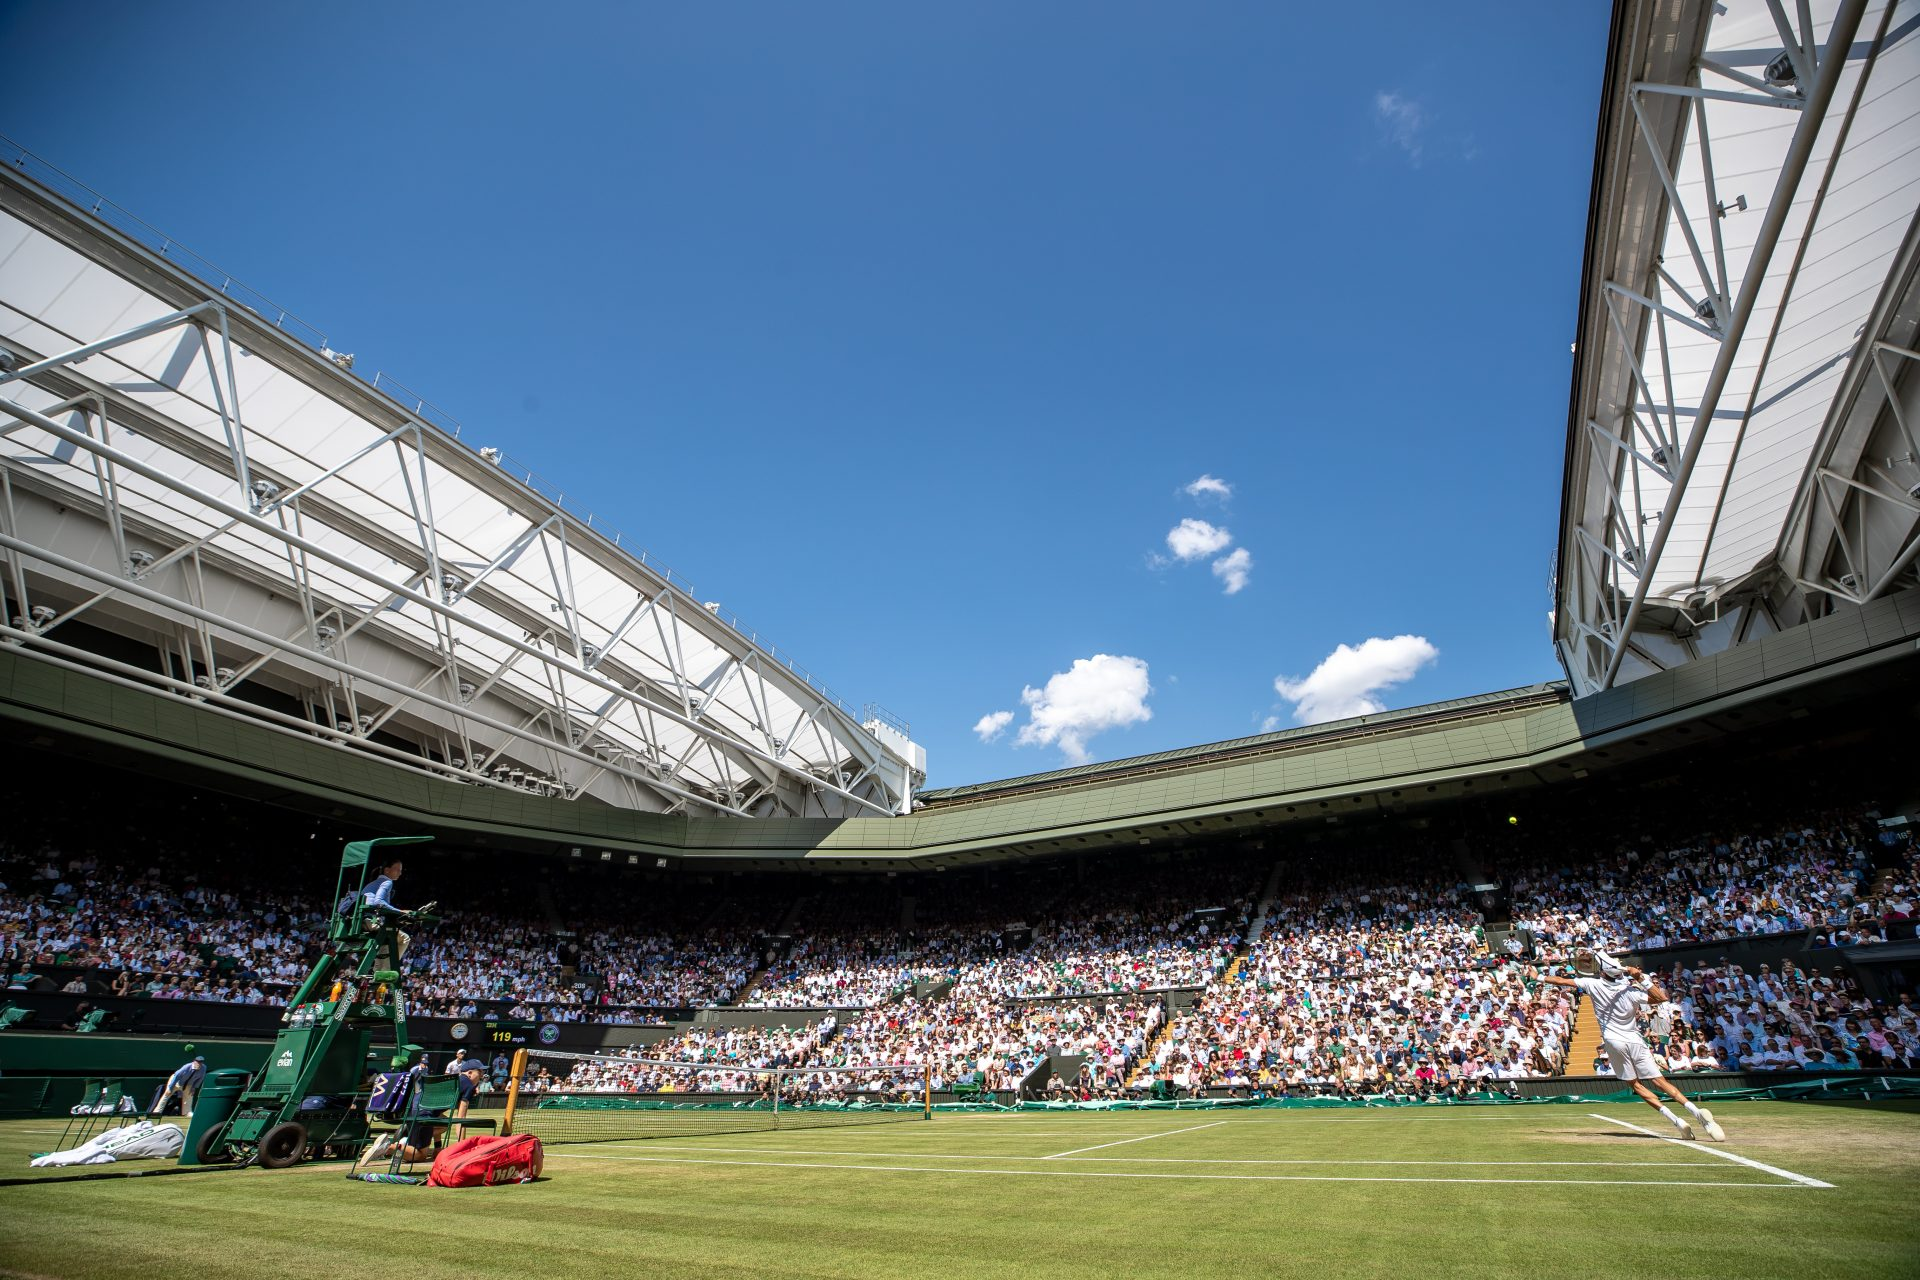 Wimbledon is allowed to be completely full, Wembley is not for the semi-finals and finals